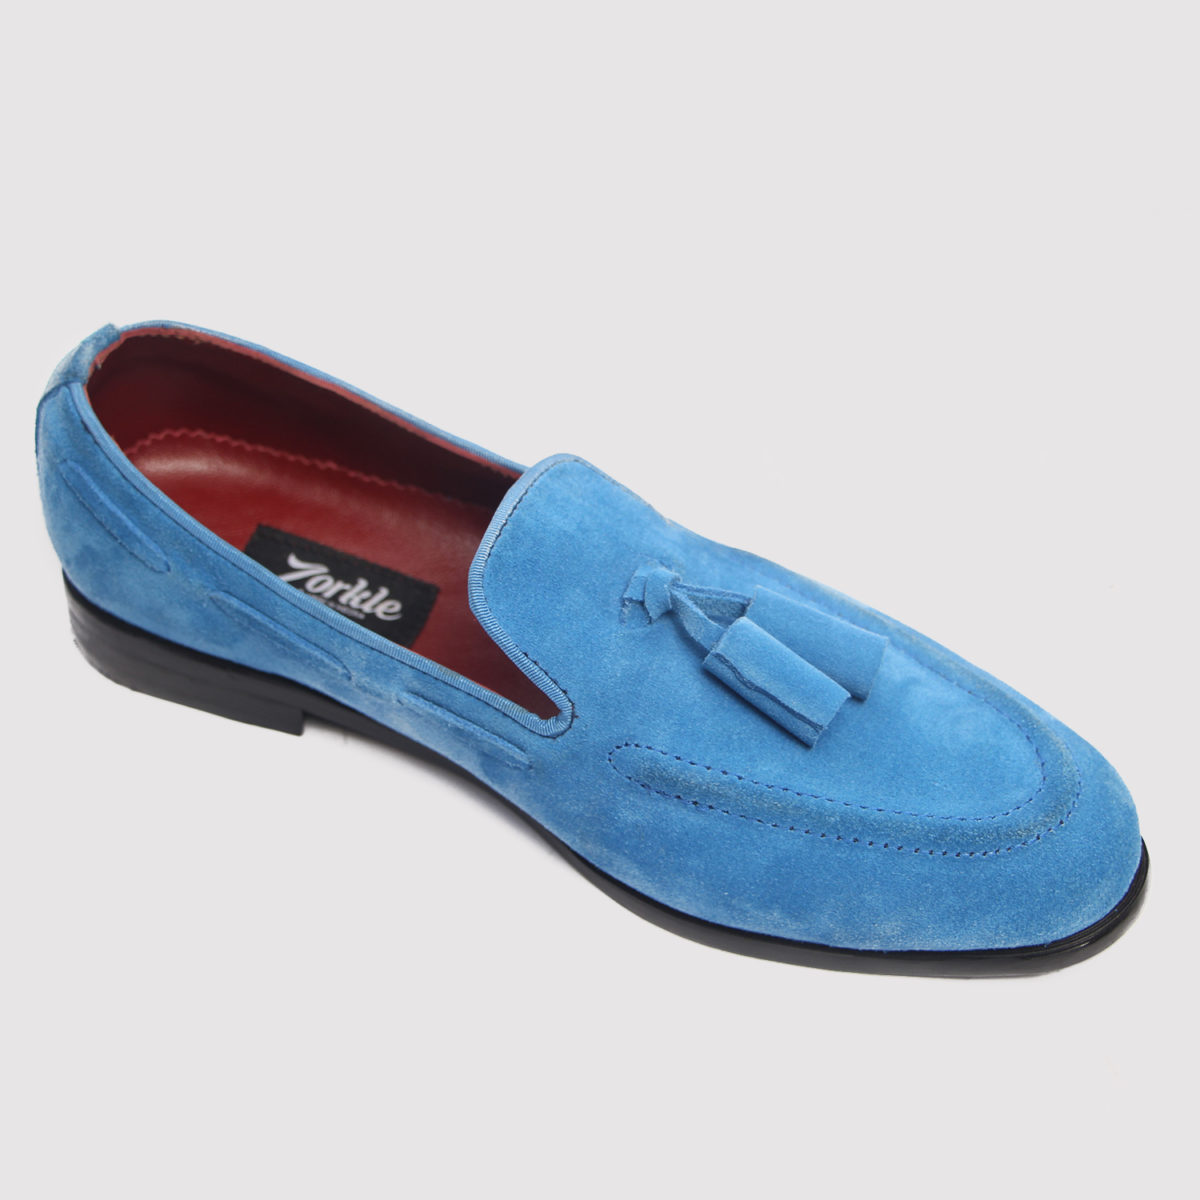 Trevor tassel loafers blue suede zorkle shoes in lagos nigeria